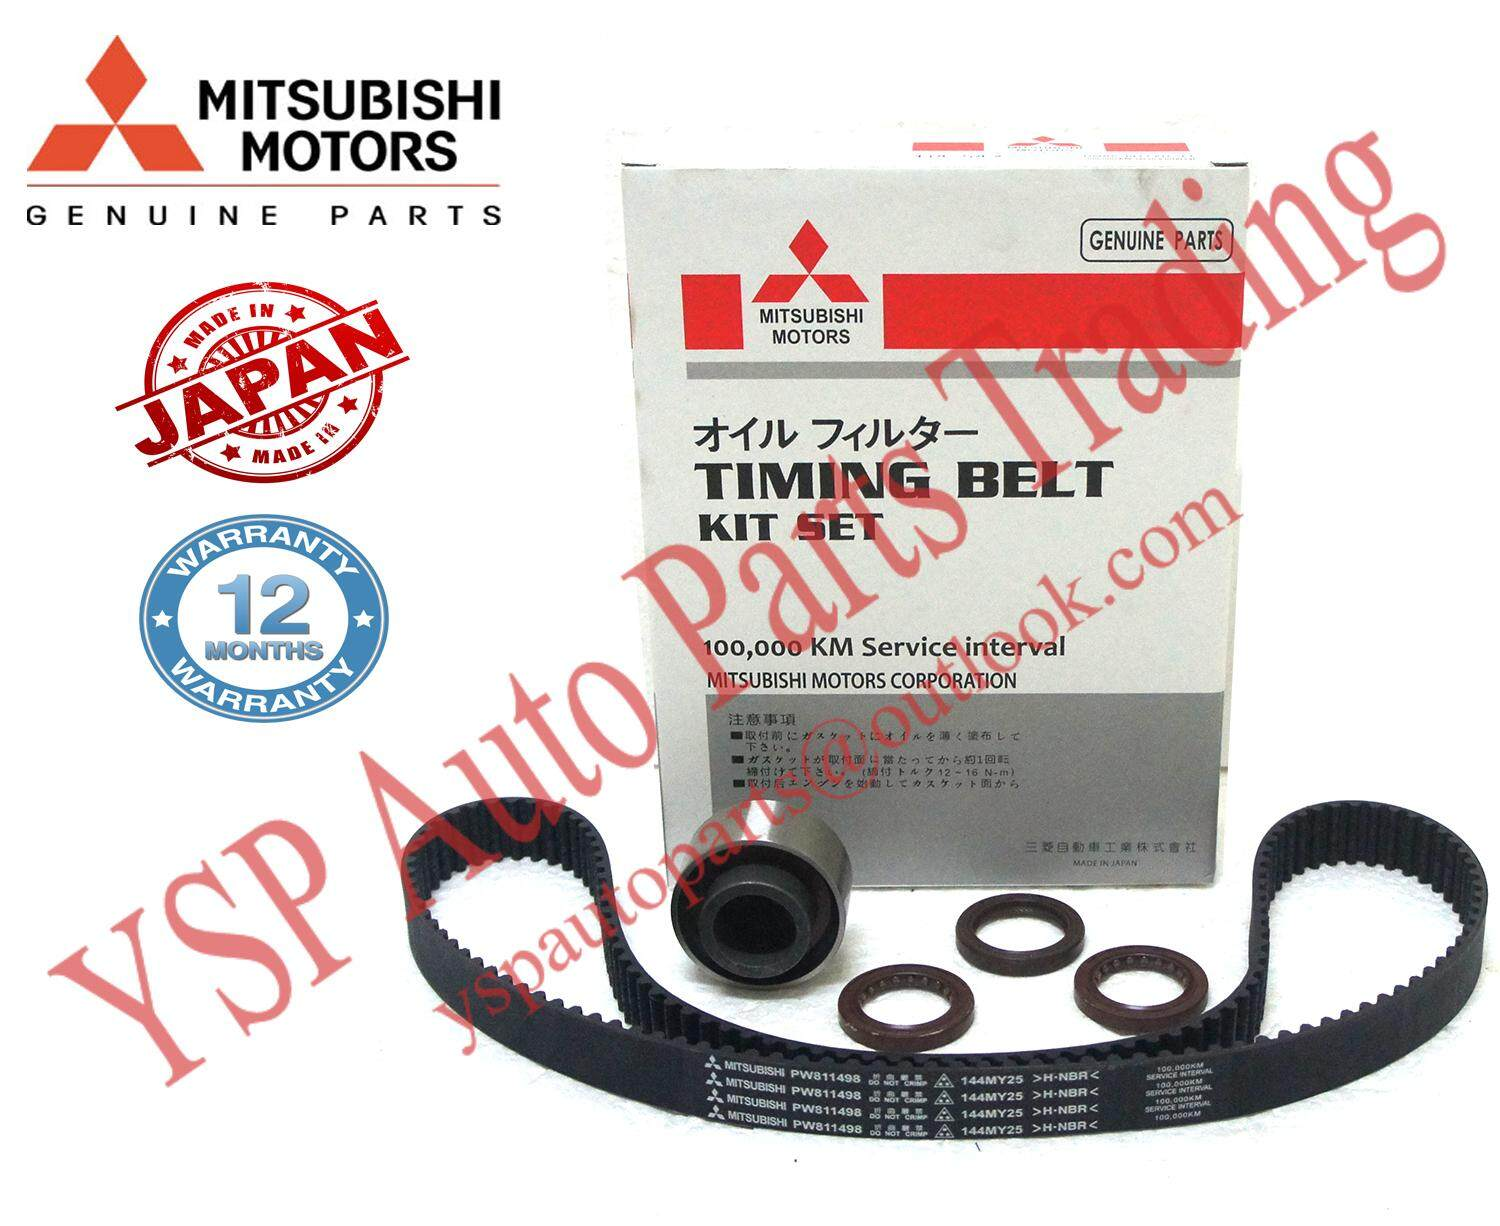 Mitsubishi Auto Parts Spares Price In Malaysia Best 2001 Montero Timing Belt Proton Saga Blm Fl 13 16 20082011